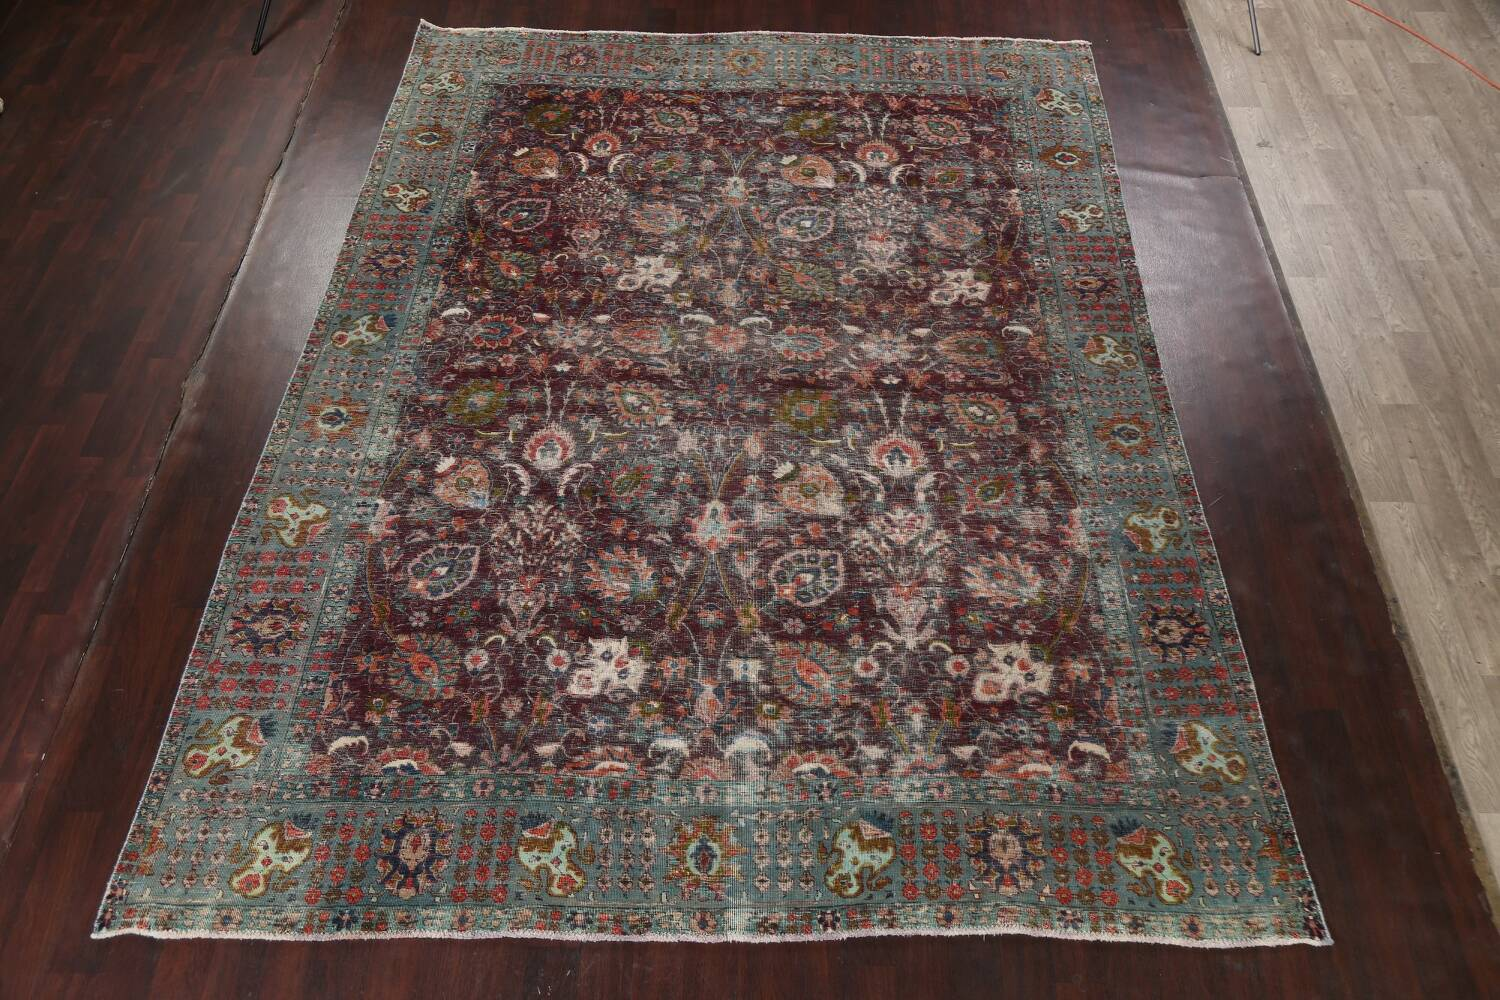 Antique Over-Dyed Tabriz Persian Area Rug 9x12 image 15